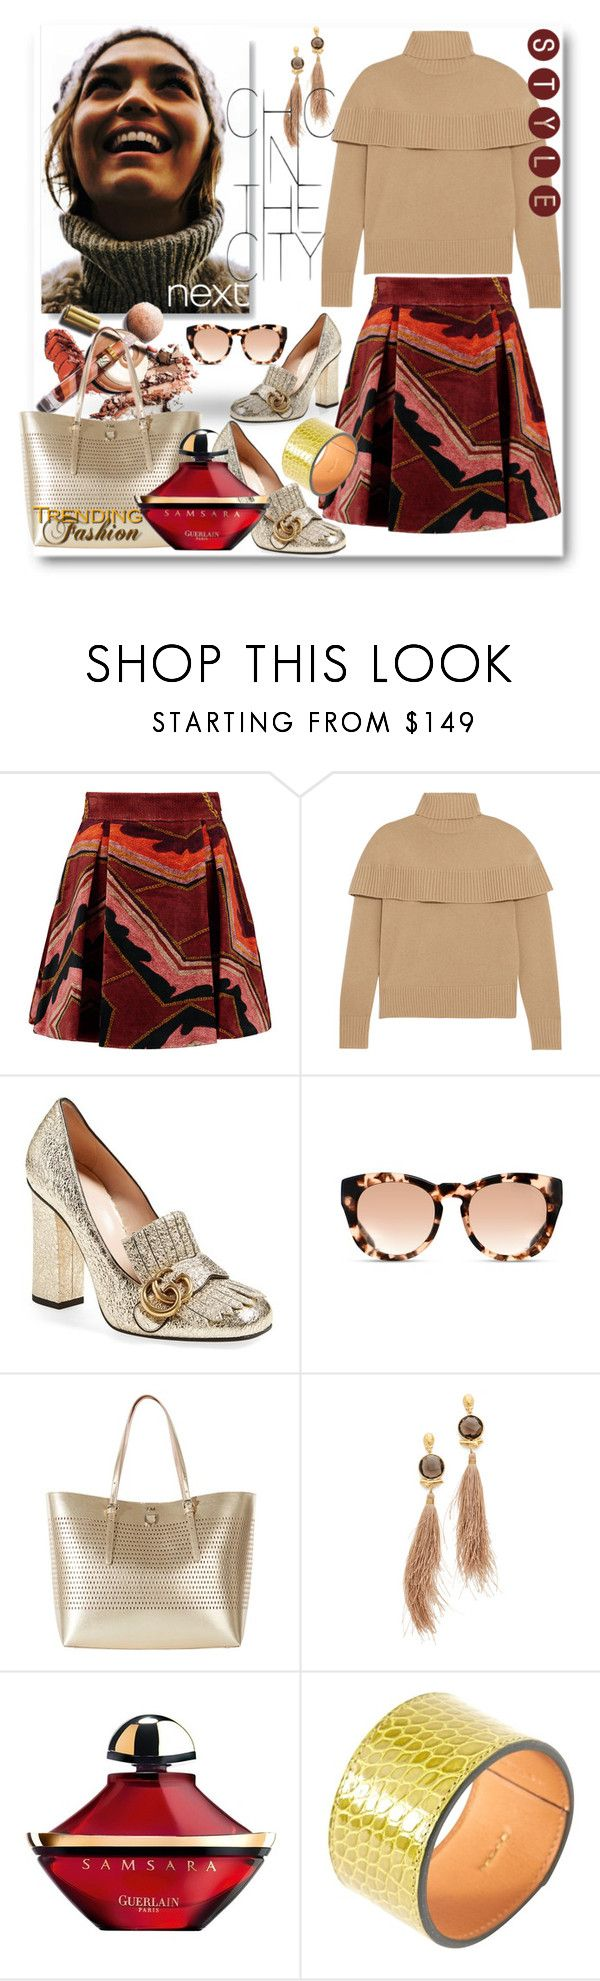 """""""Chic in the City"""" by sunflower-707 ❤ liked on Polyvore featuring Just Cavalli, Chloé, Gucci, Michael Kors, Karen Millen, Gas Bijoux, Guerlain and Hermès"""